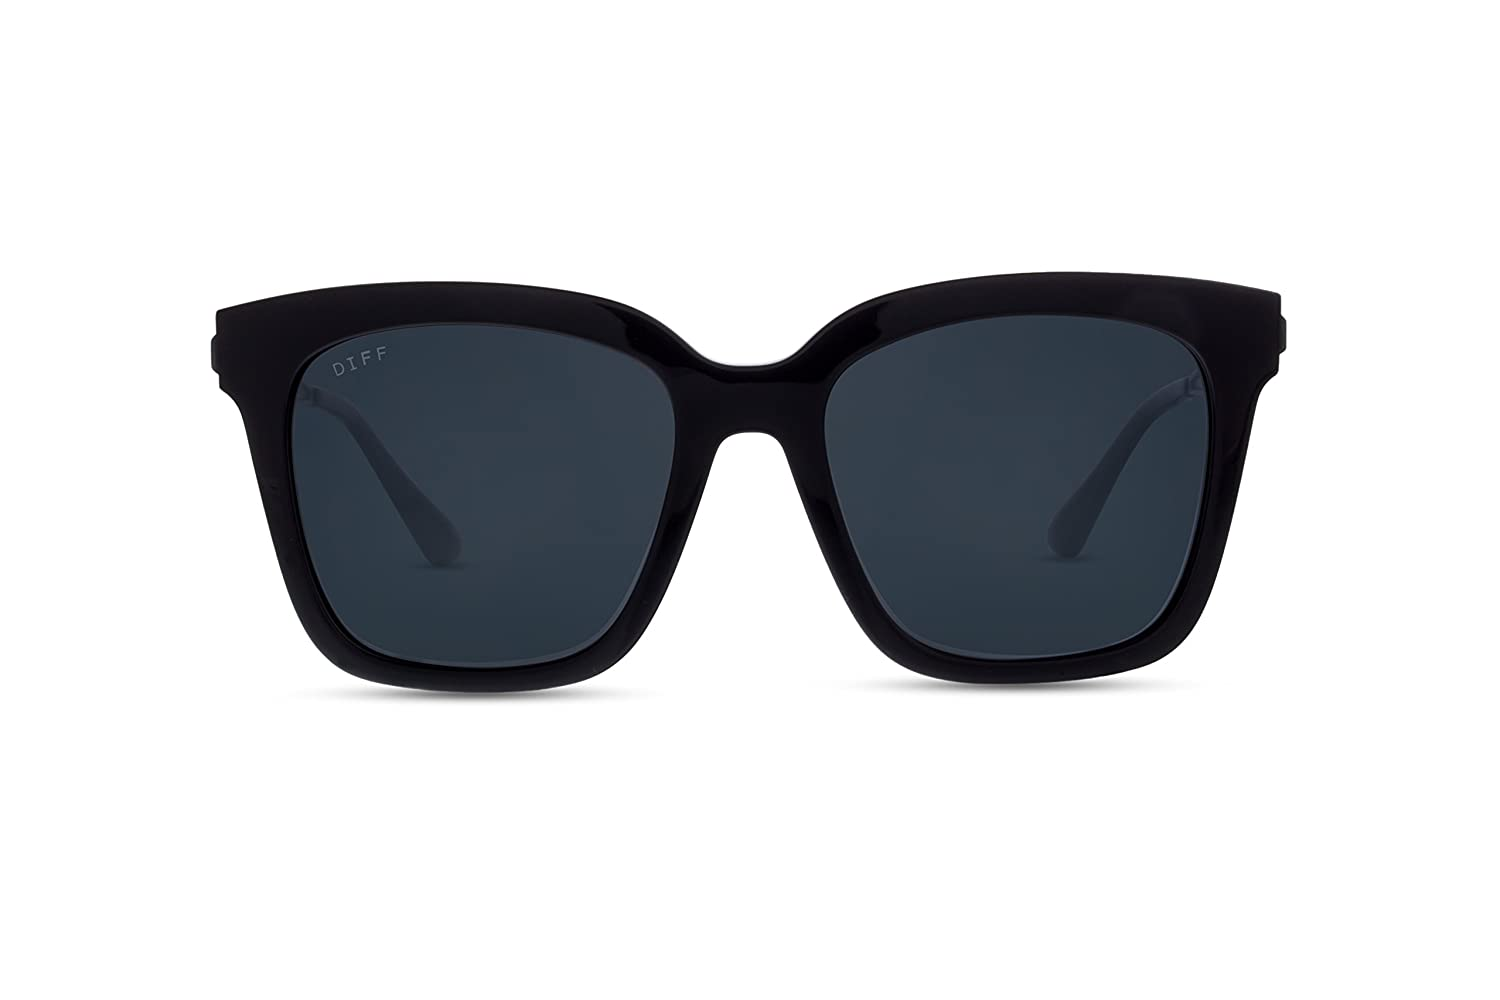 0b6e682685 Amazon.com  Diff Eyewear  Bella - Designer Square Sunglasses - 100%  UVA UVB  Clothing